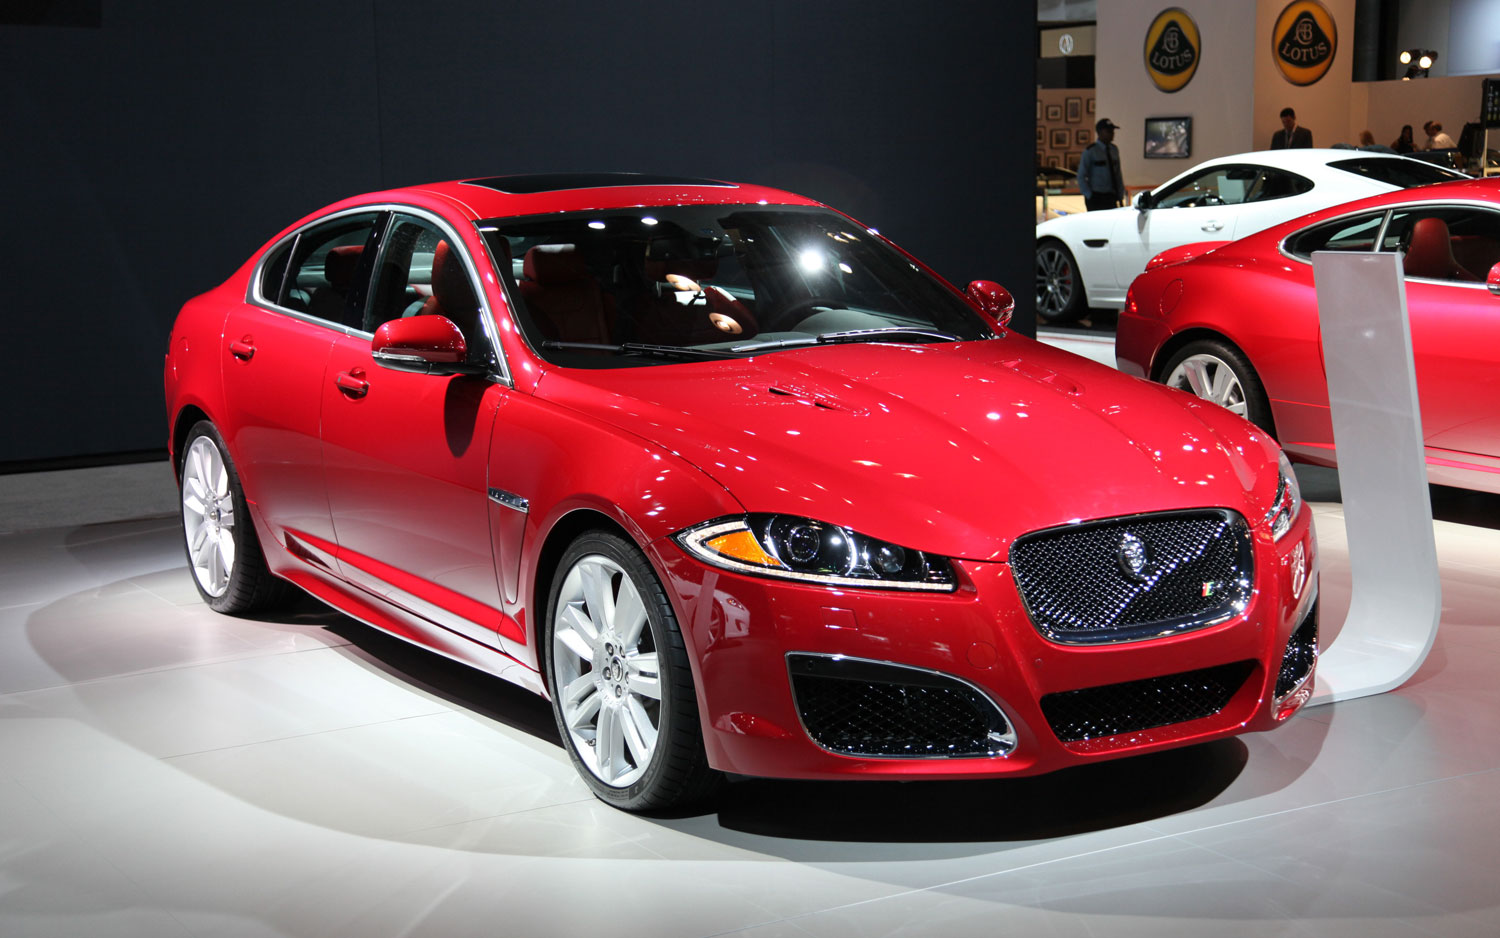 2012 Jaguar Xf Front Right Side View